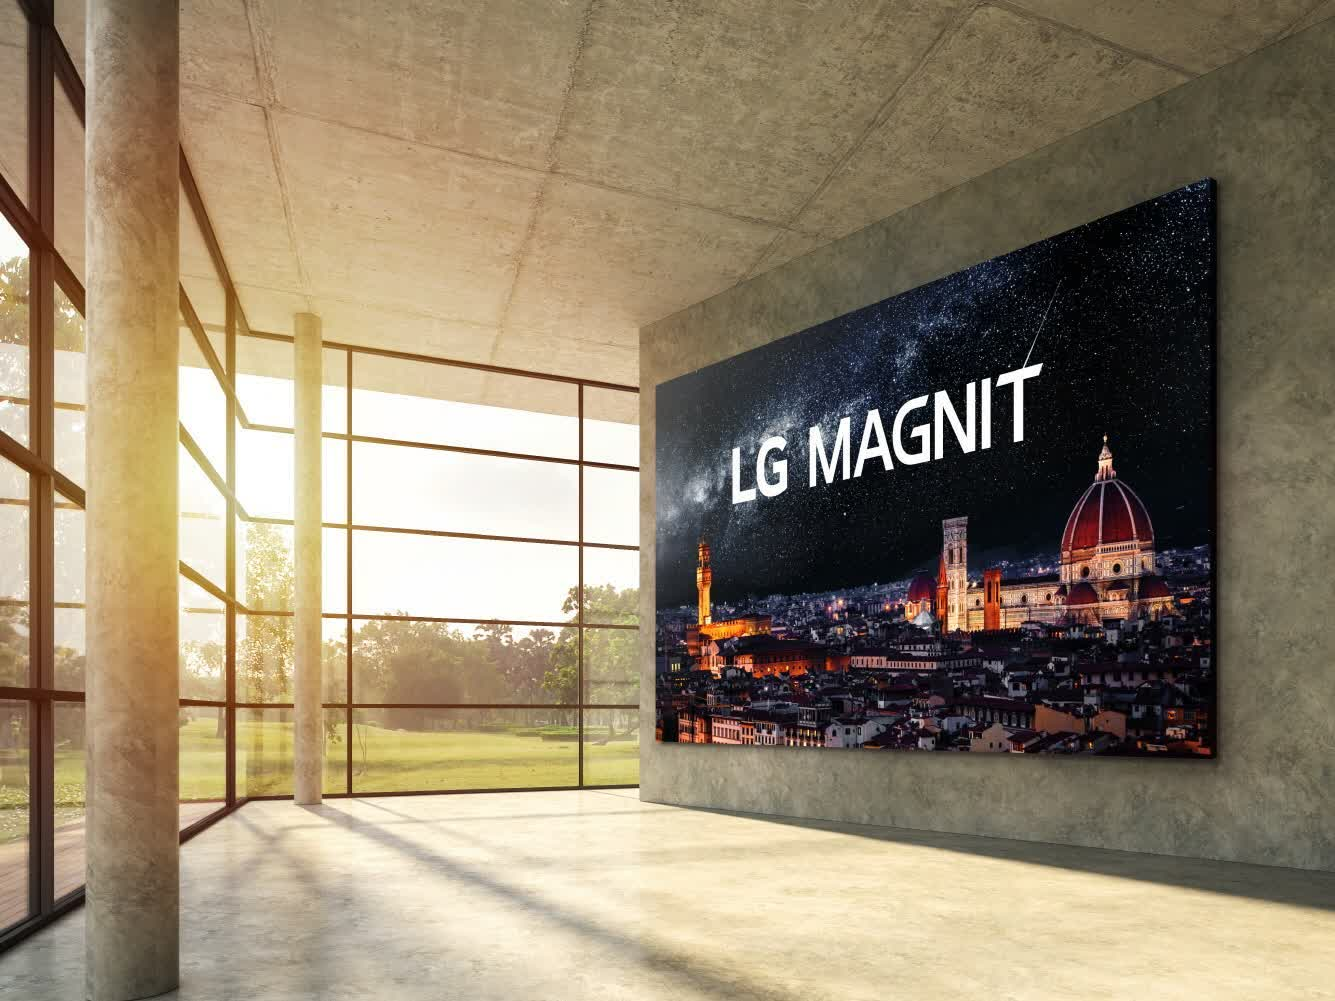 LG unveils 163-inch MicroLED TV